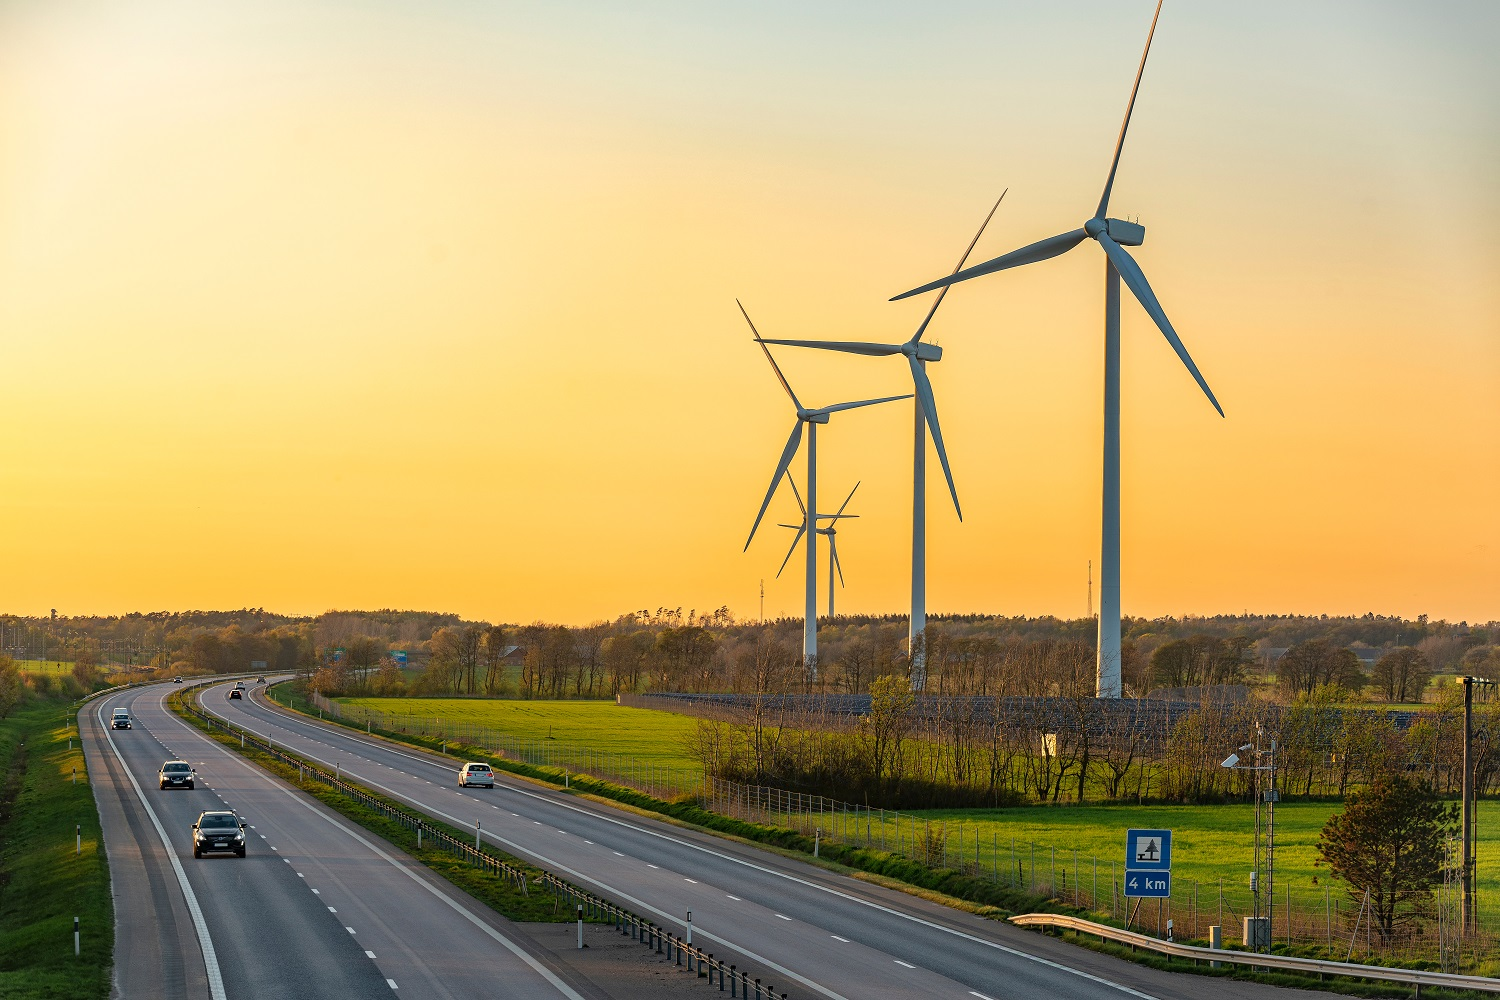 New Renewables Developer Goes Back to the Future With Bet on Onshore Wind